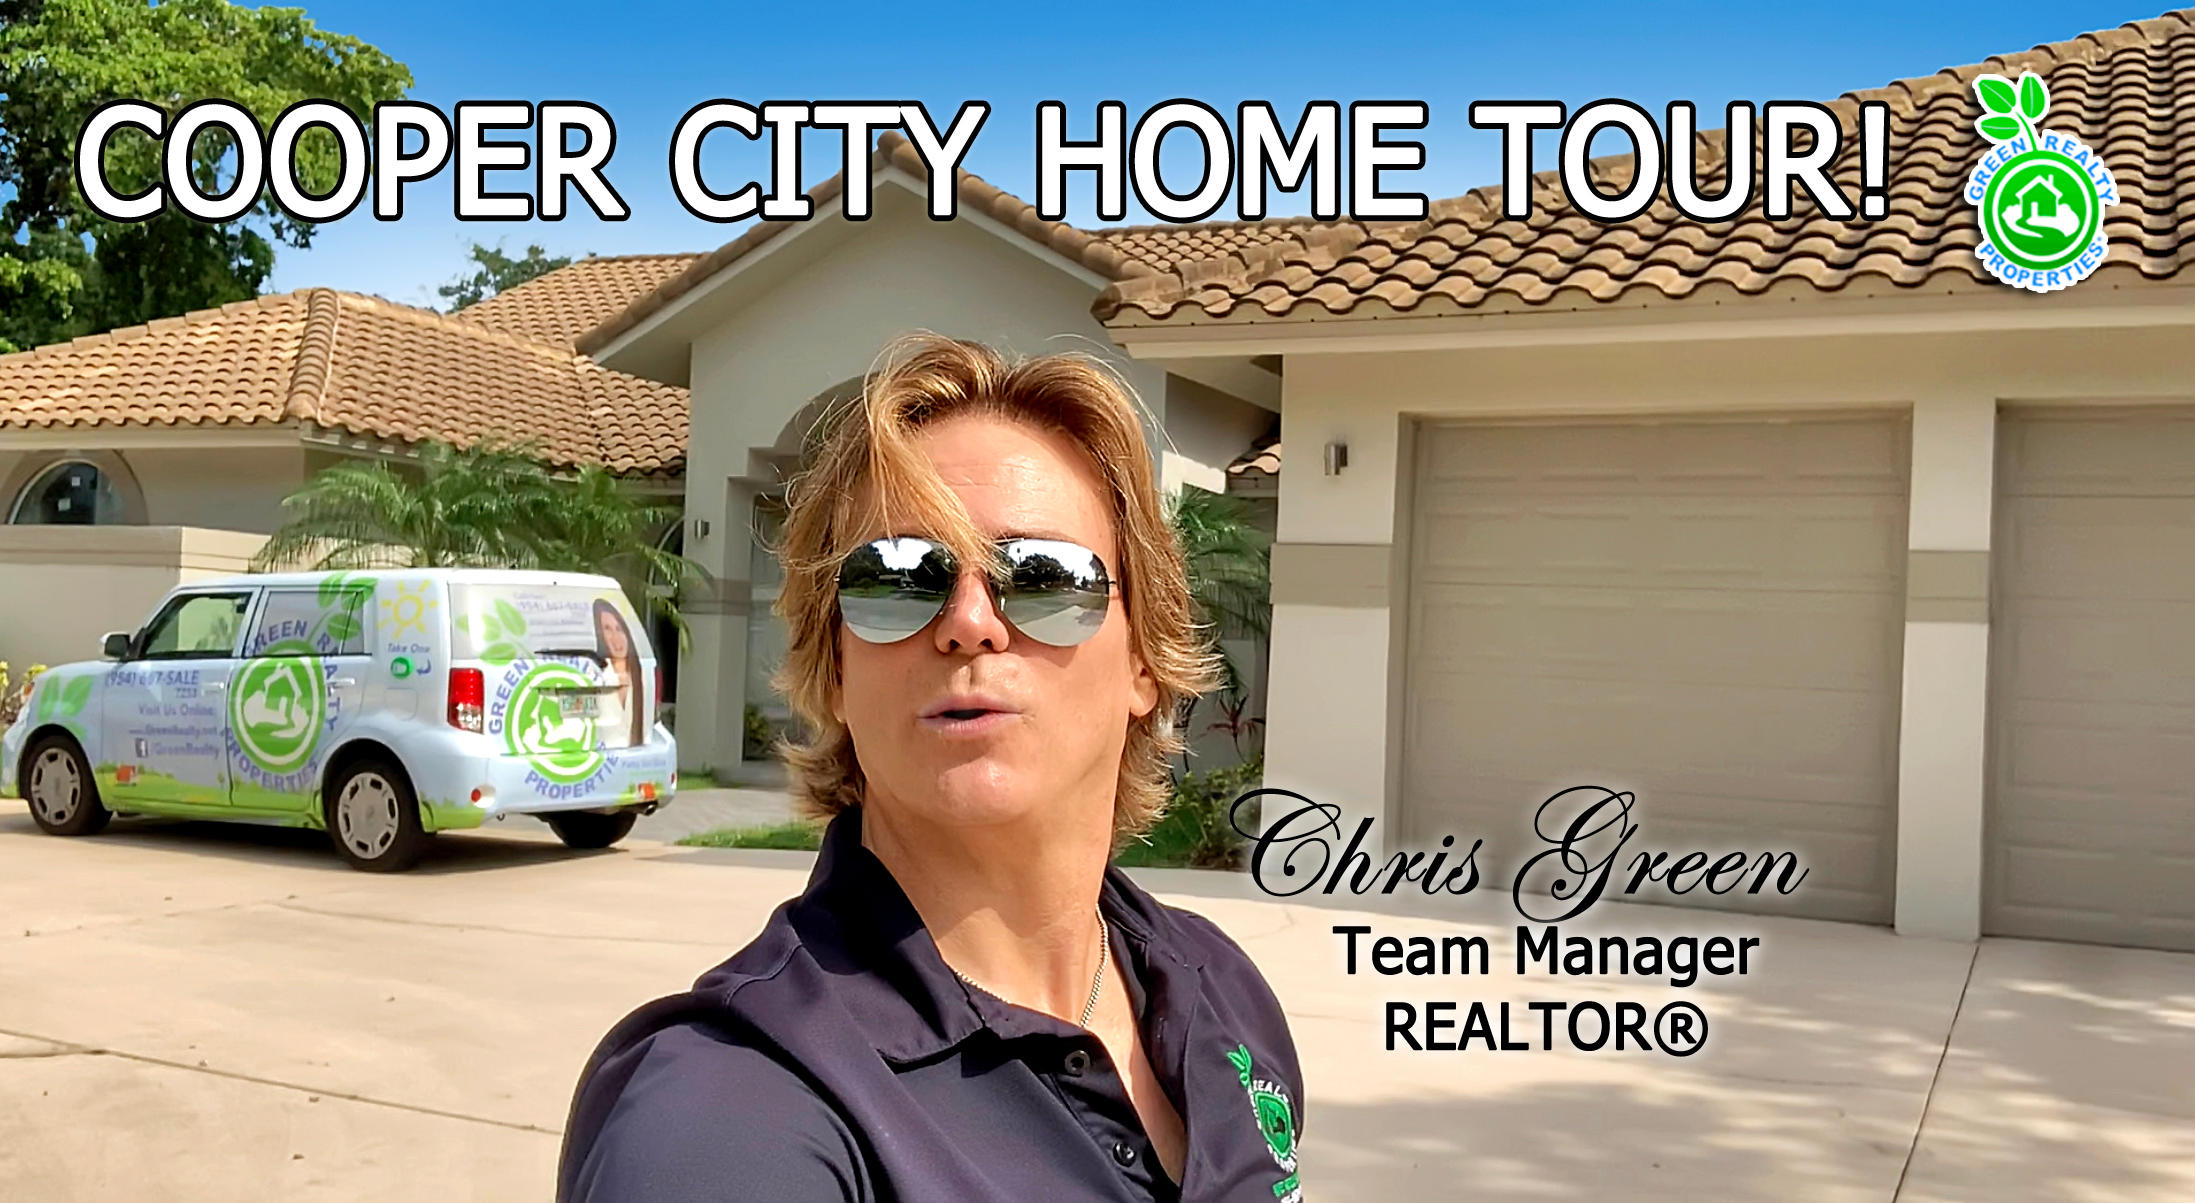 Chris Green Realtor/Manager & Team Leader